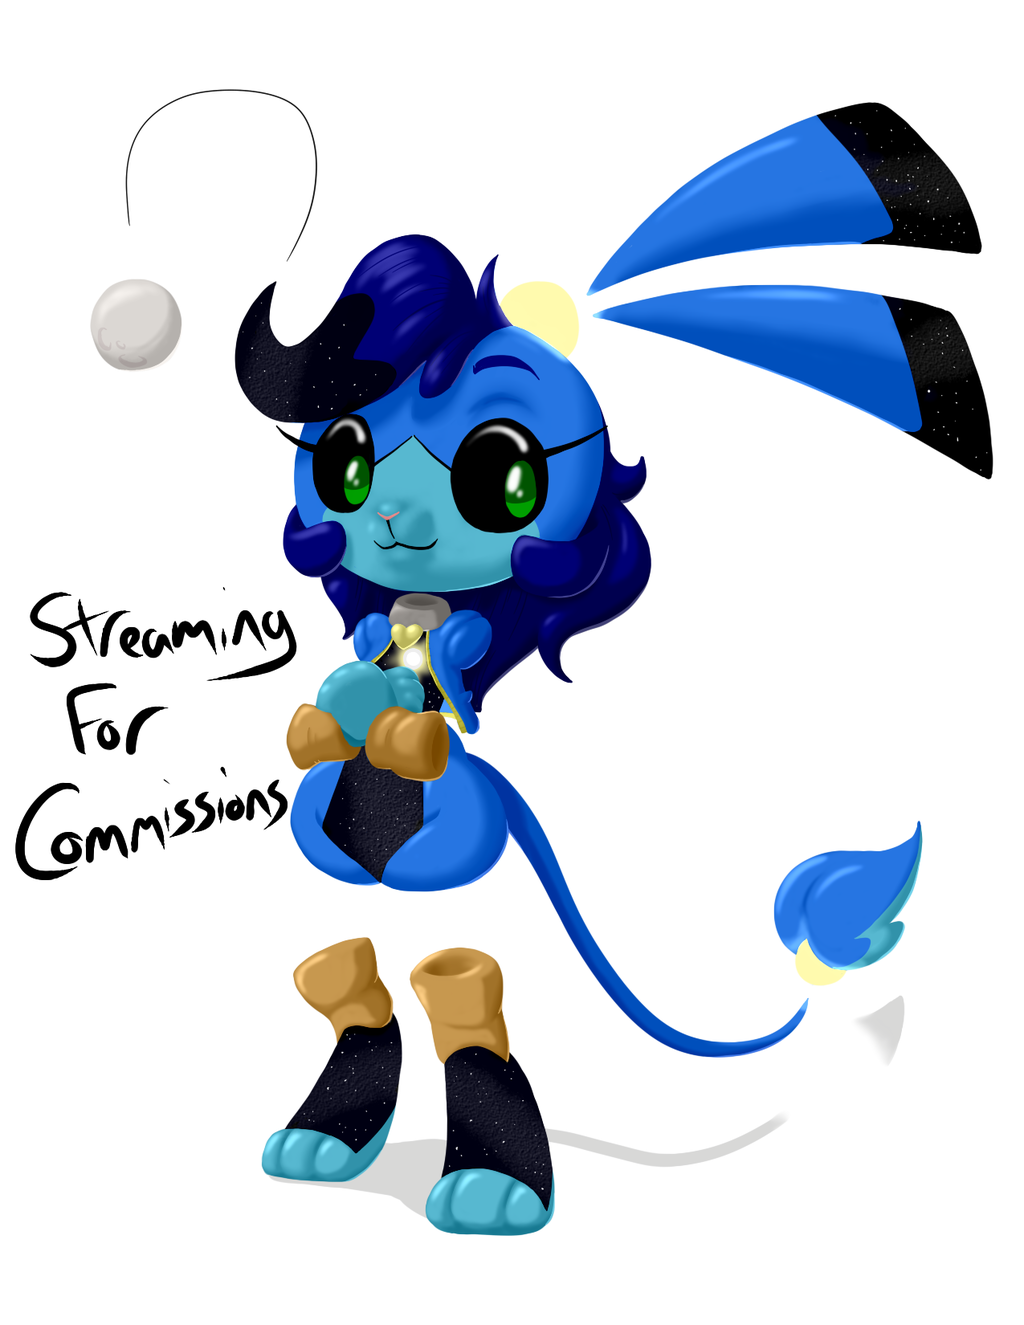 Streaming for Commissions